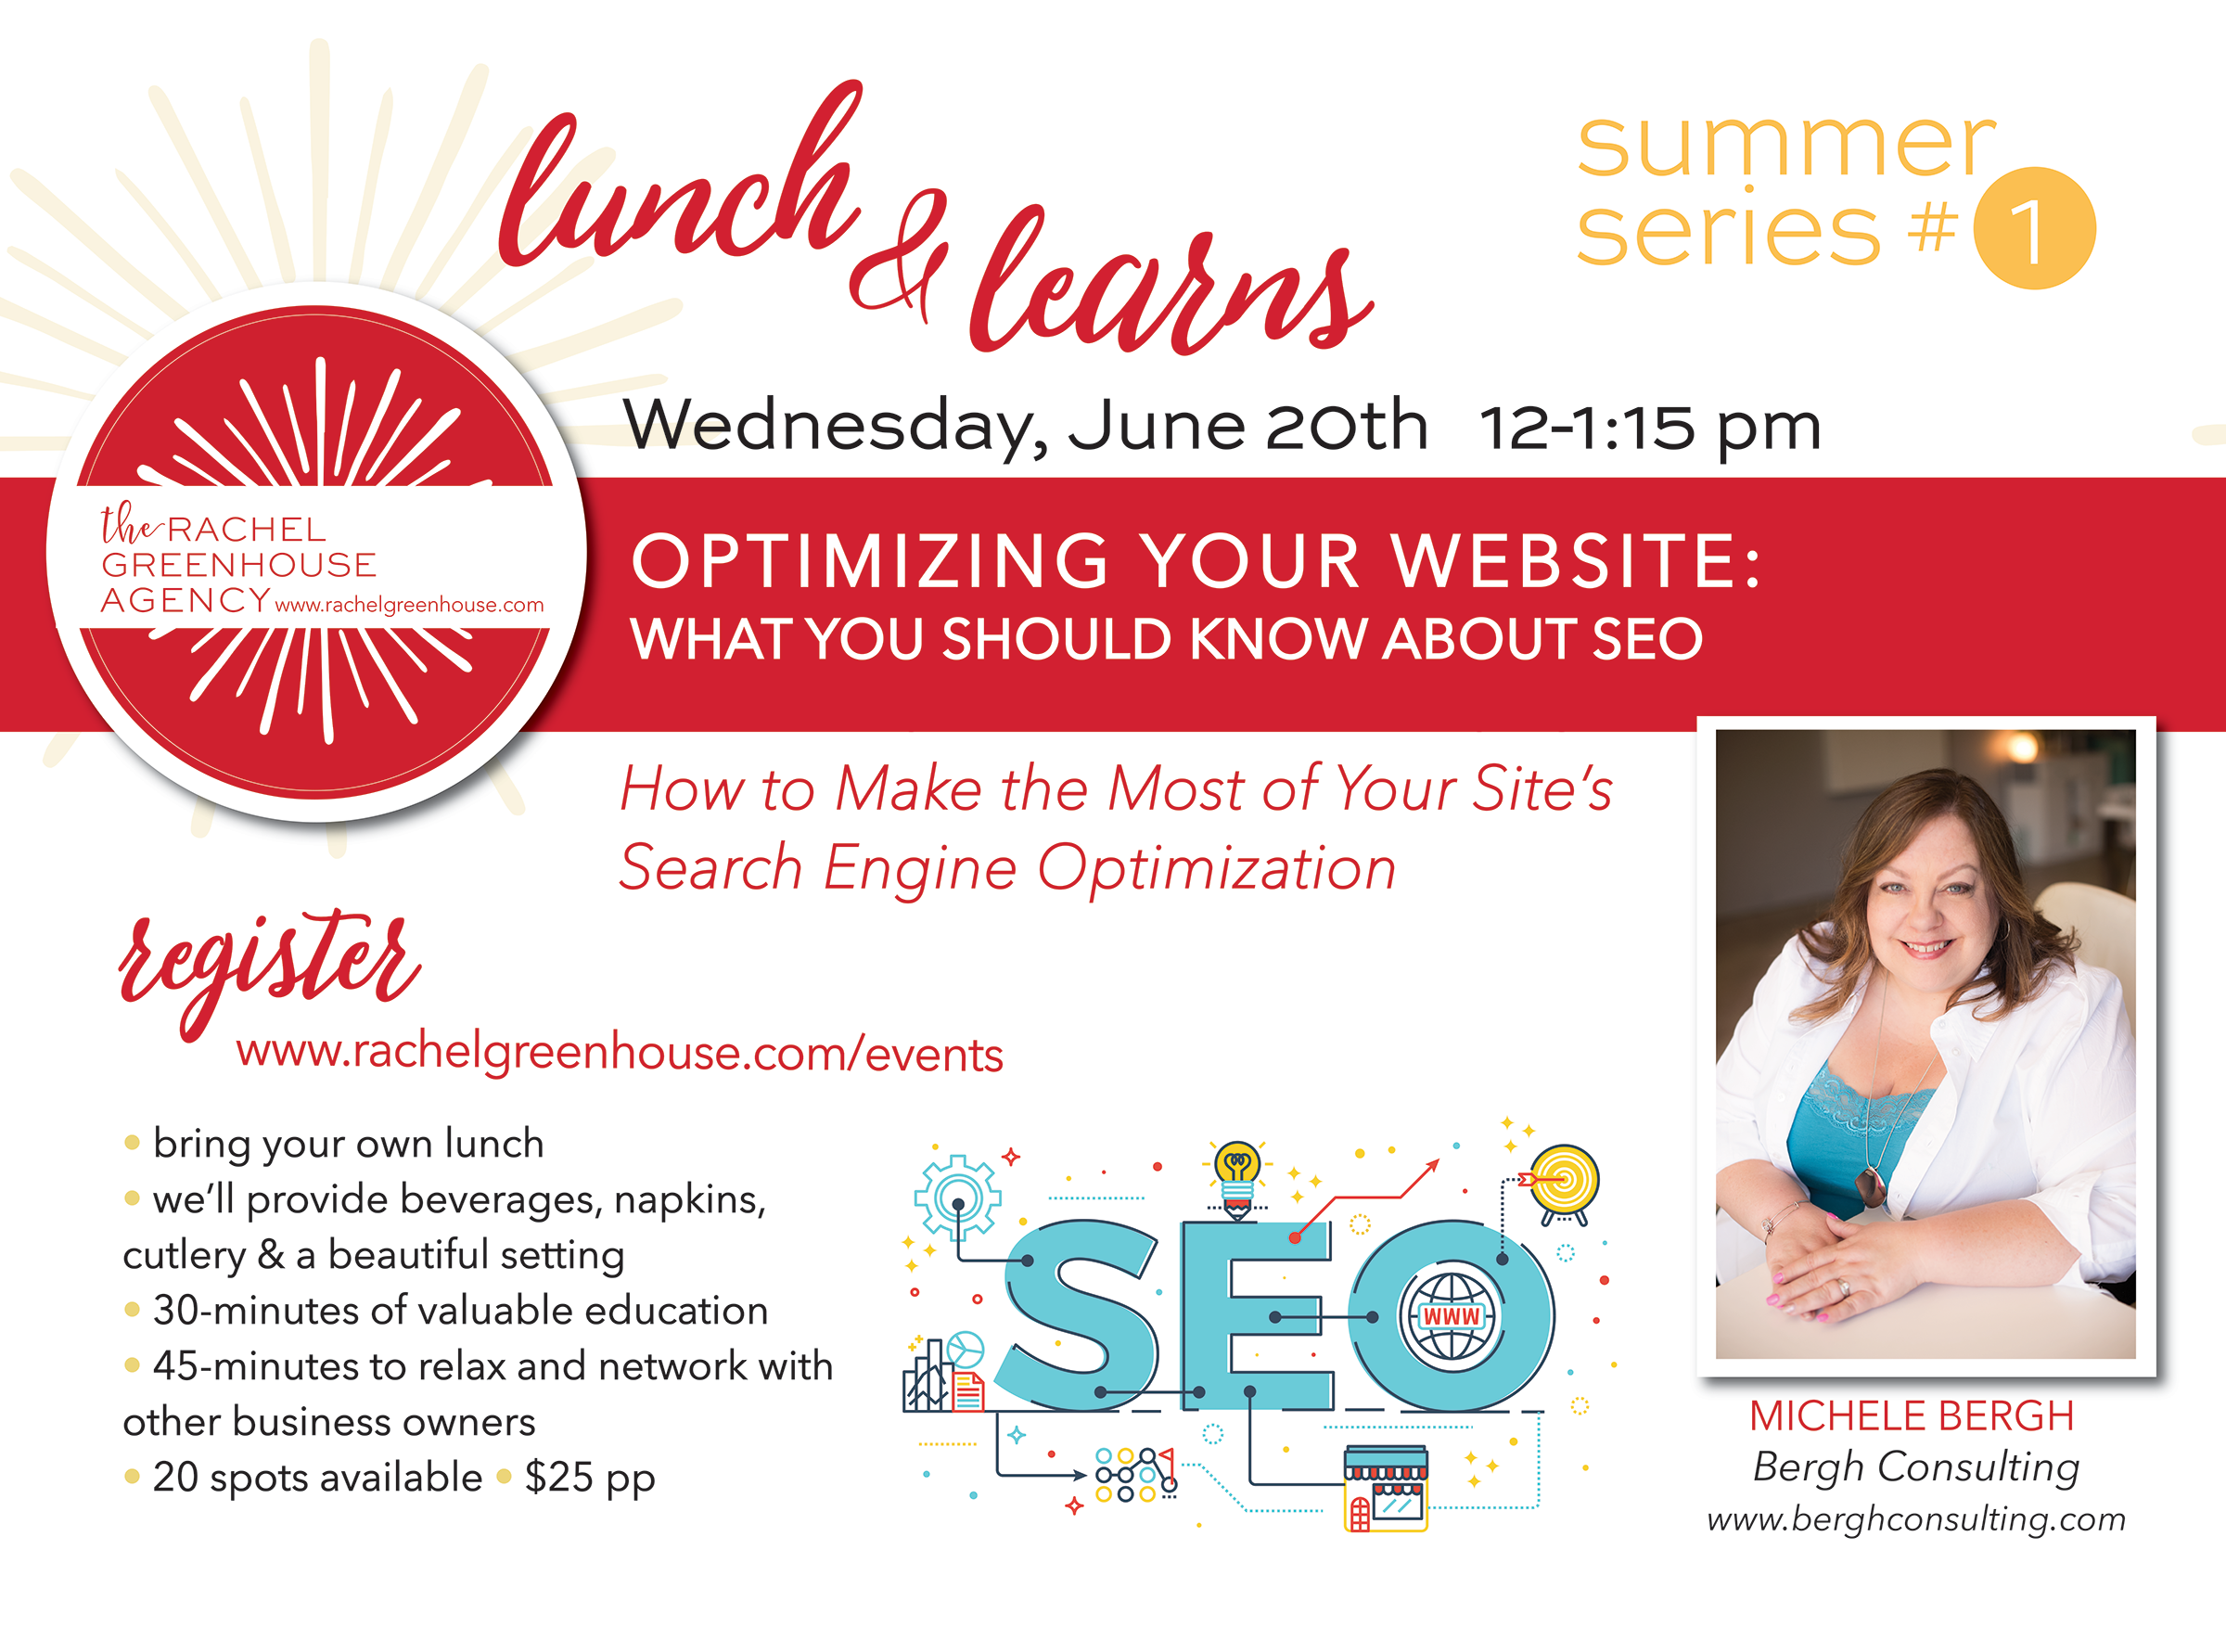 Lunch & Learn:  Optimizing Your Website @ The Rachel Greenhosue Agency